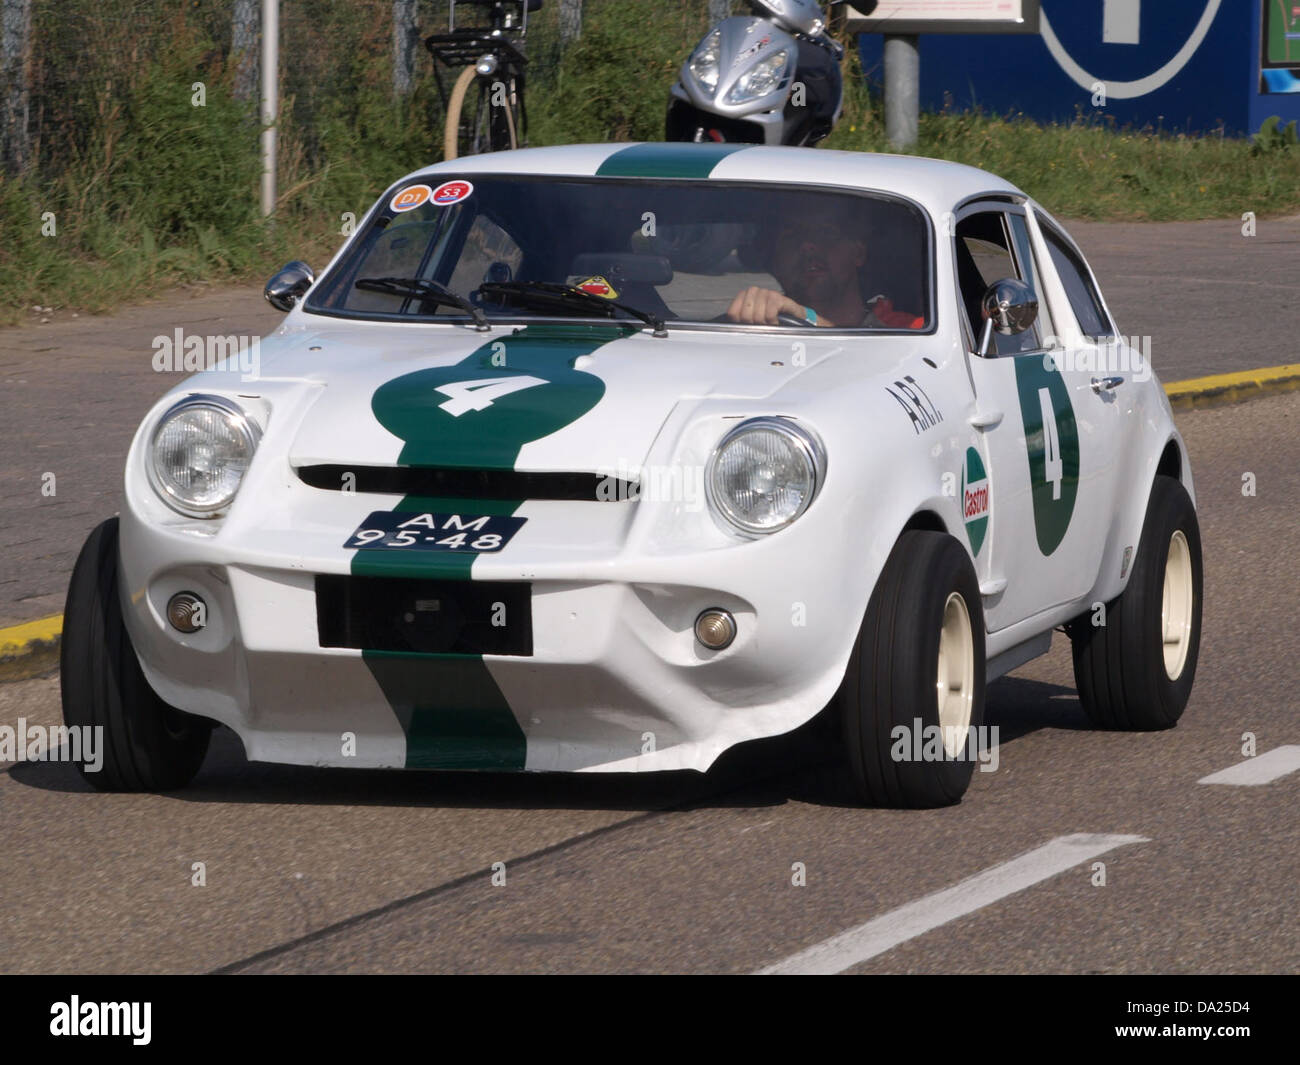 1967 MARCO S MINI MARCOS MKIII, AM-95-48 P-1 Stock Photo, Royalty ...